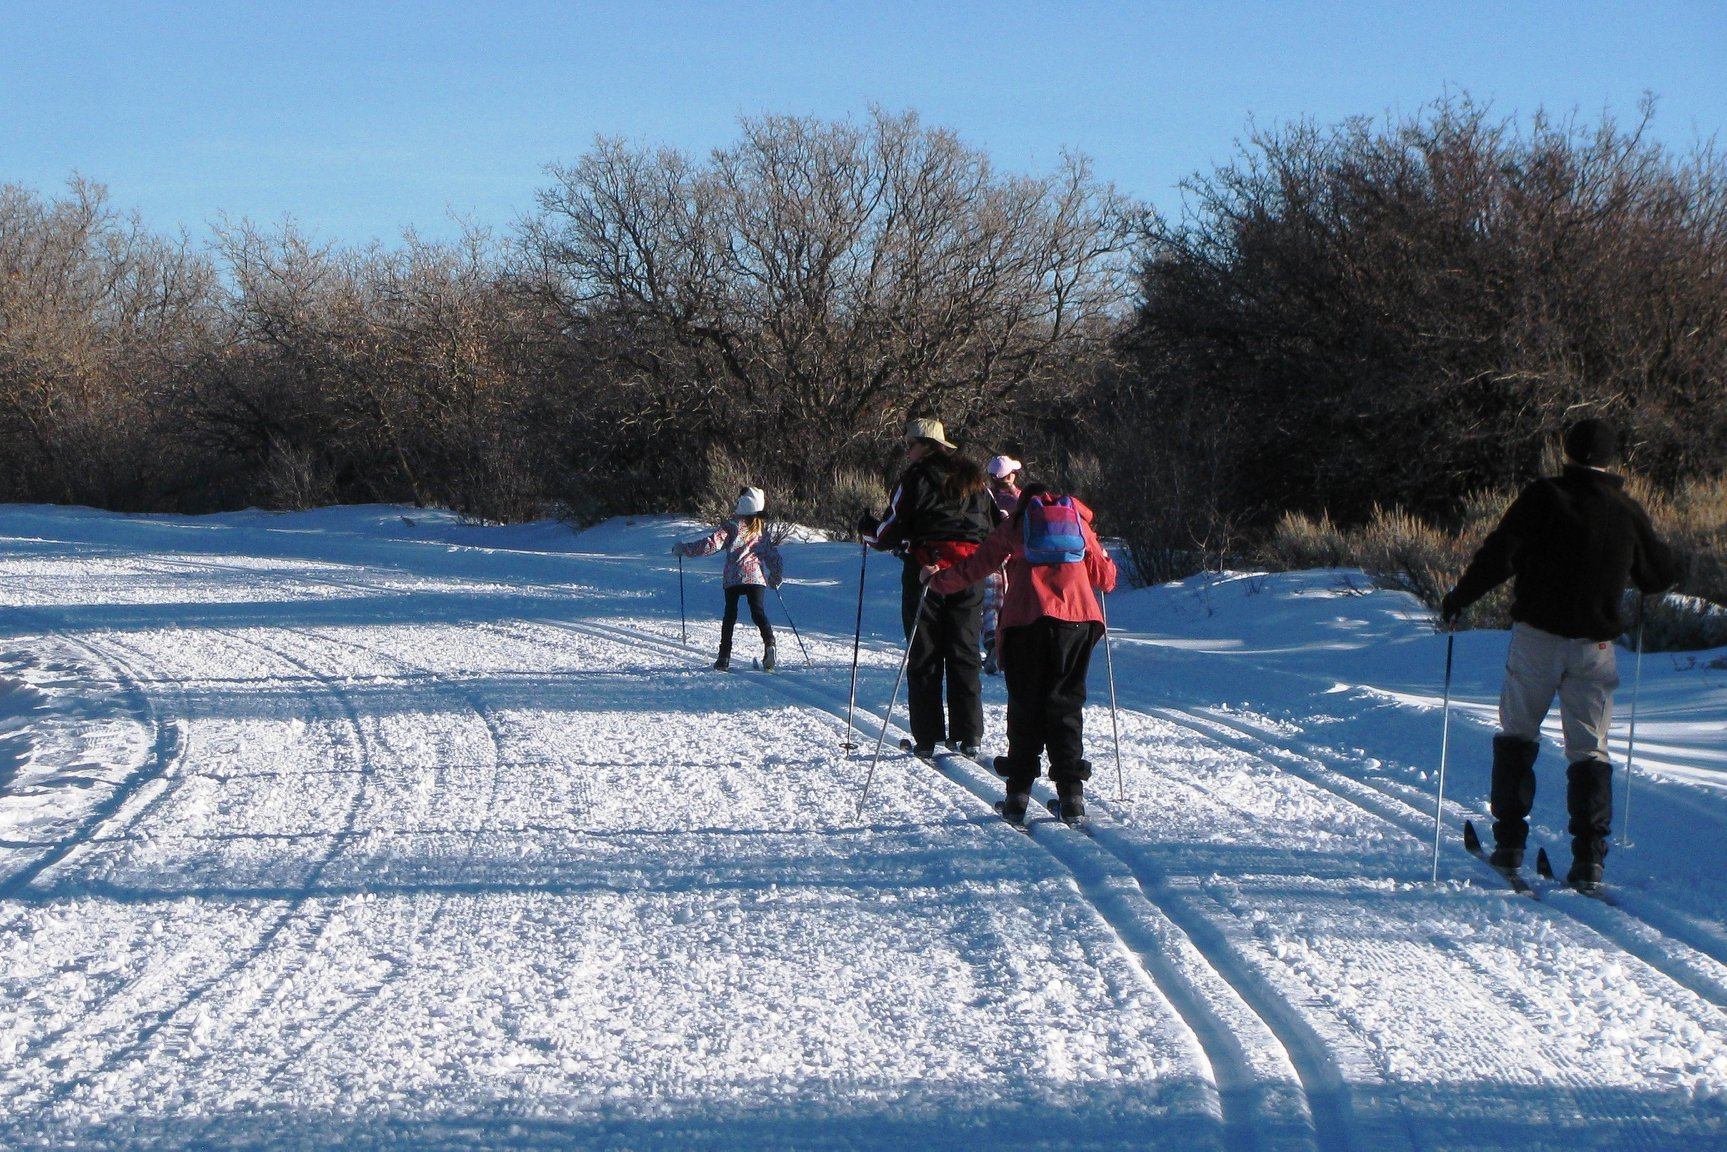 image of cross country skiing